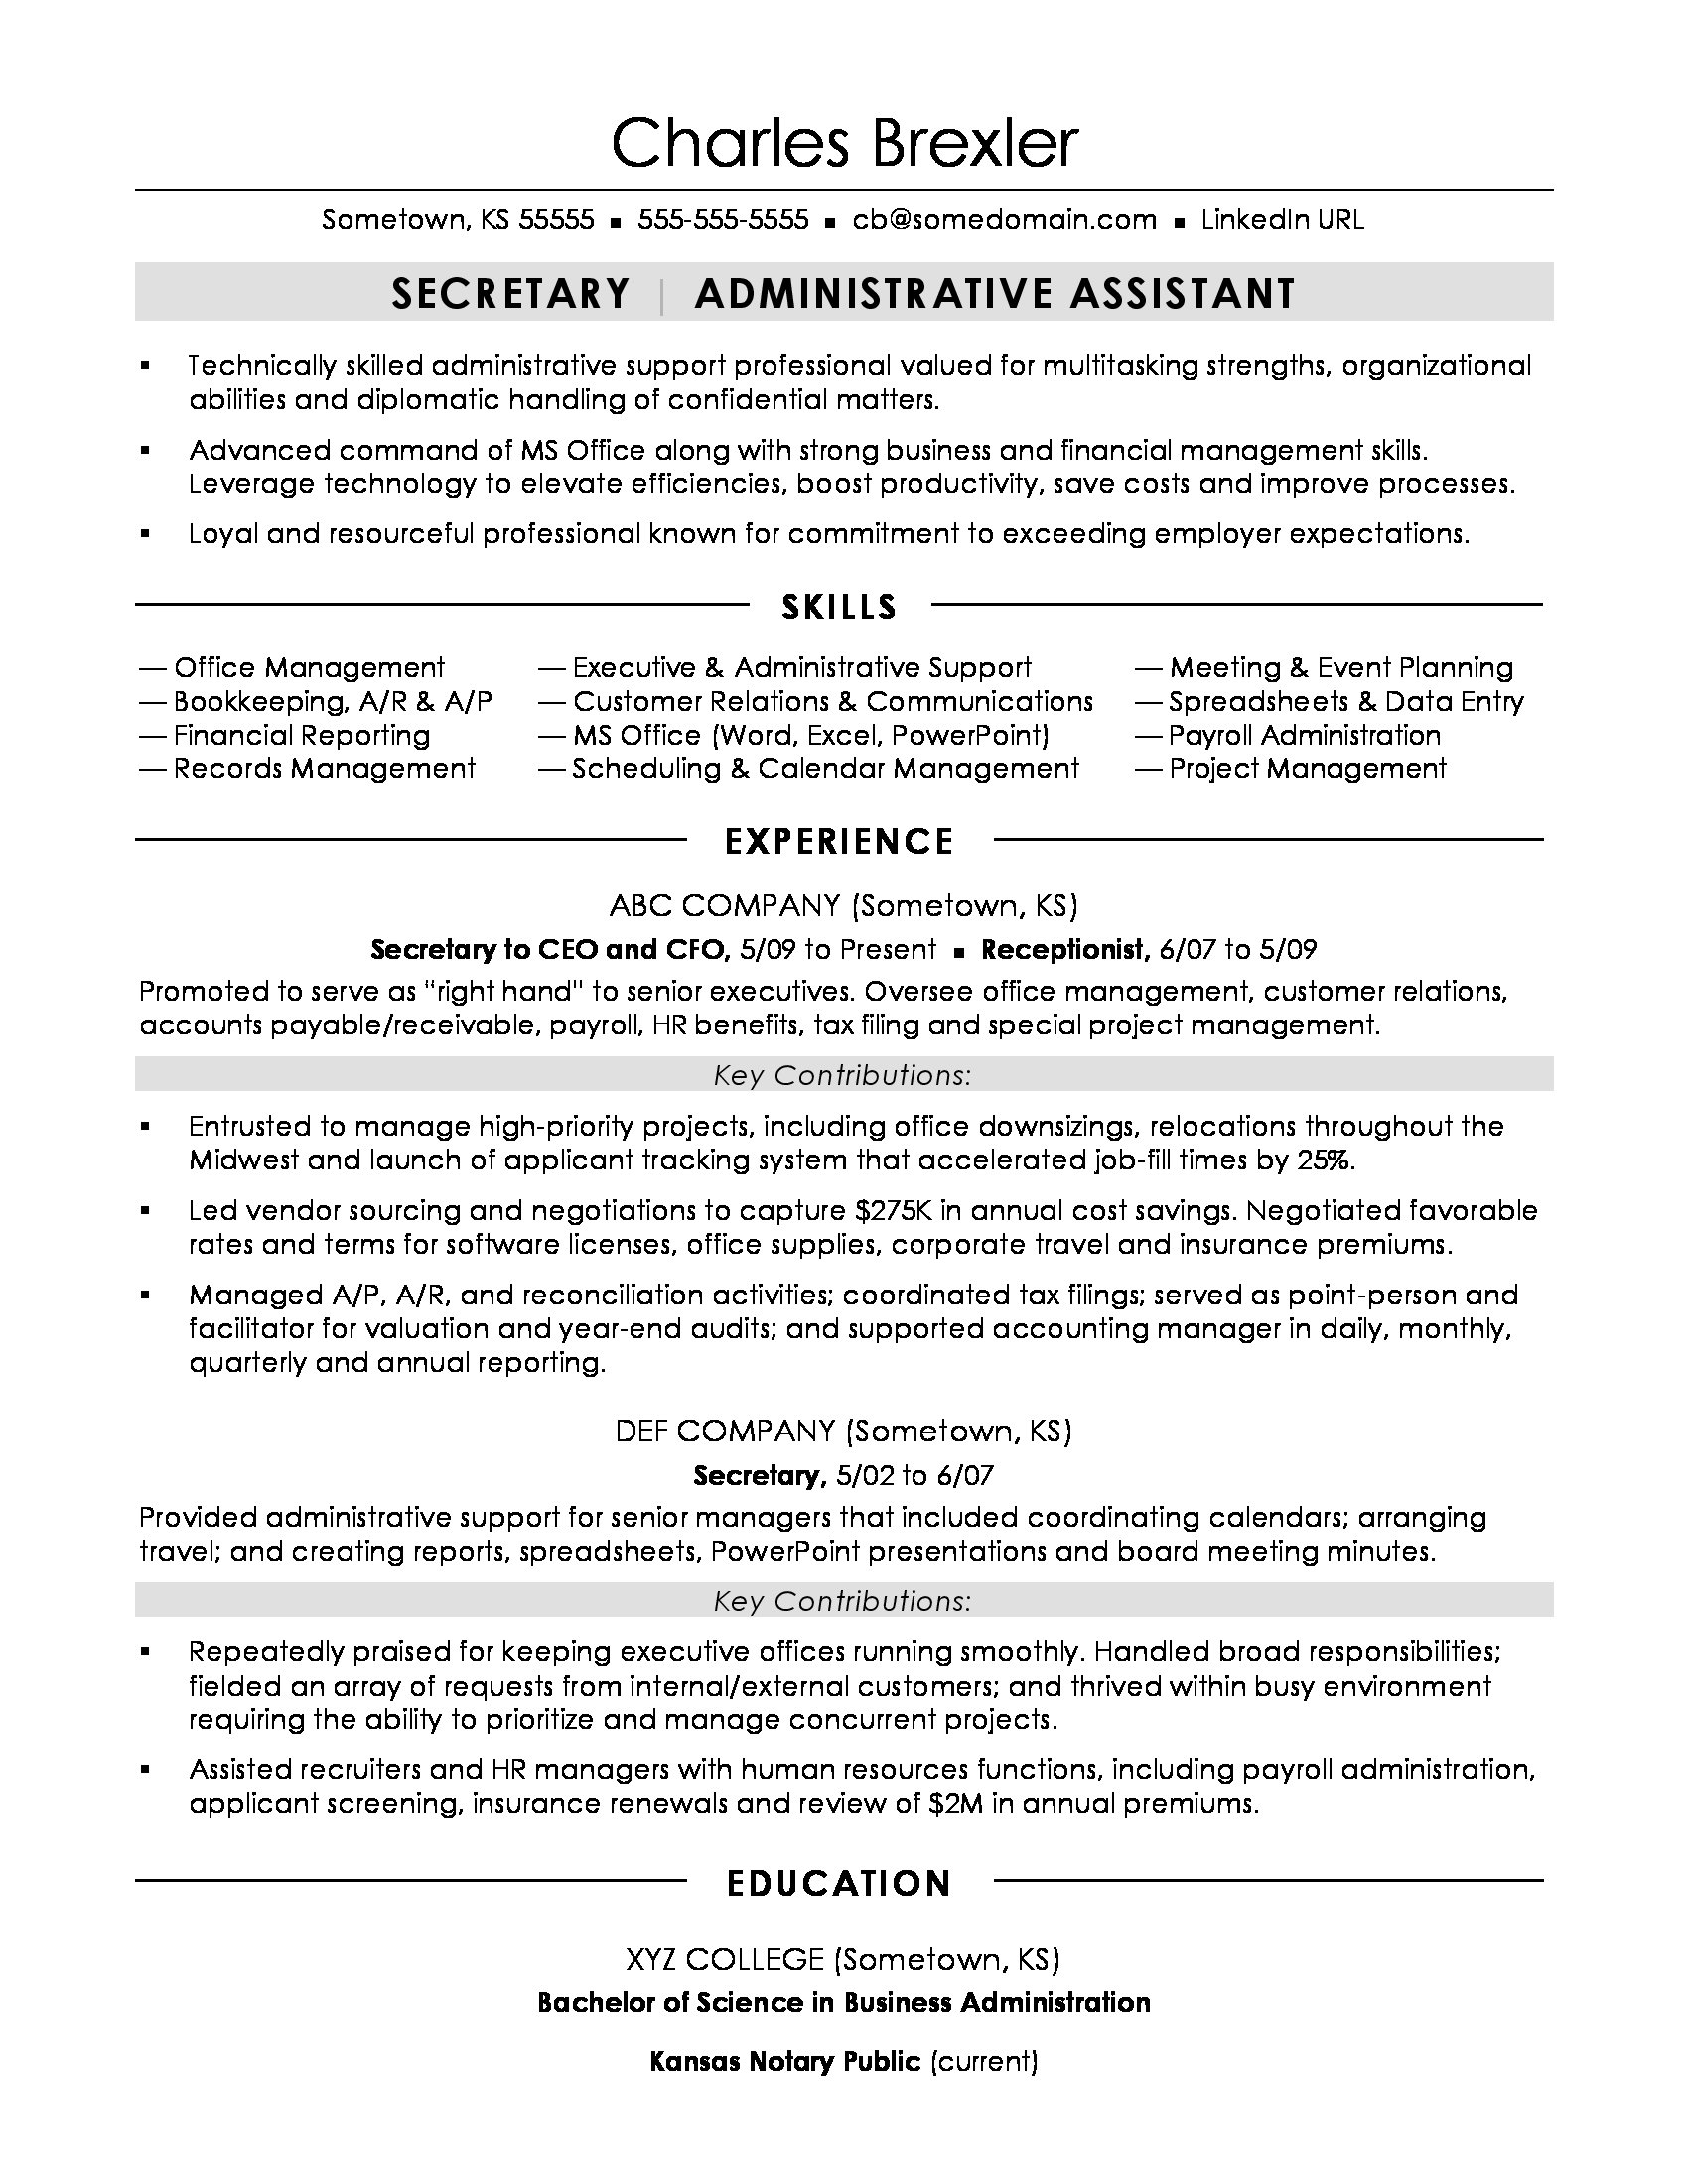 exceptionnel Secretary resume sample